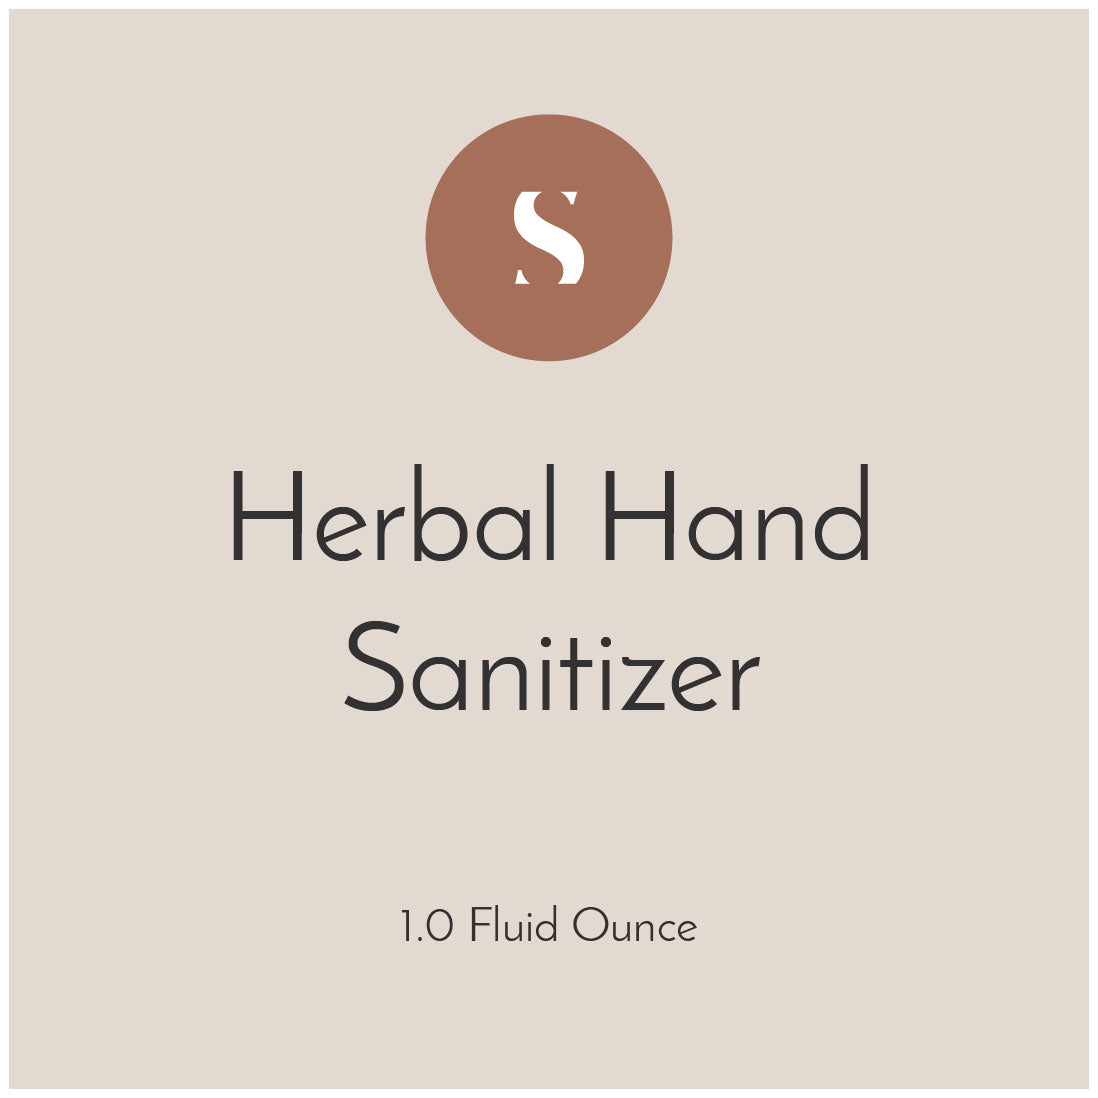 Herbal Hand Sanitizer (Free & Donation Based)